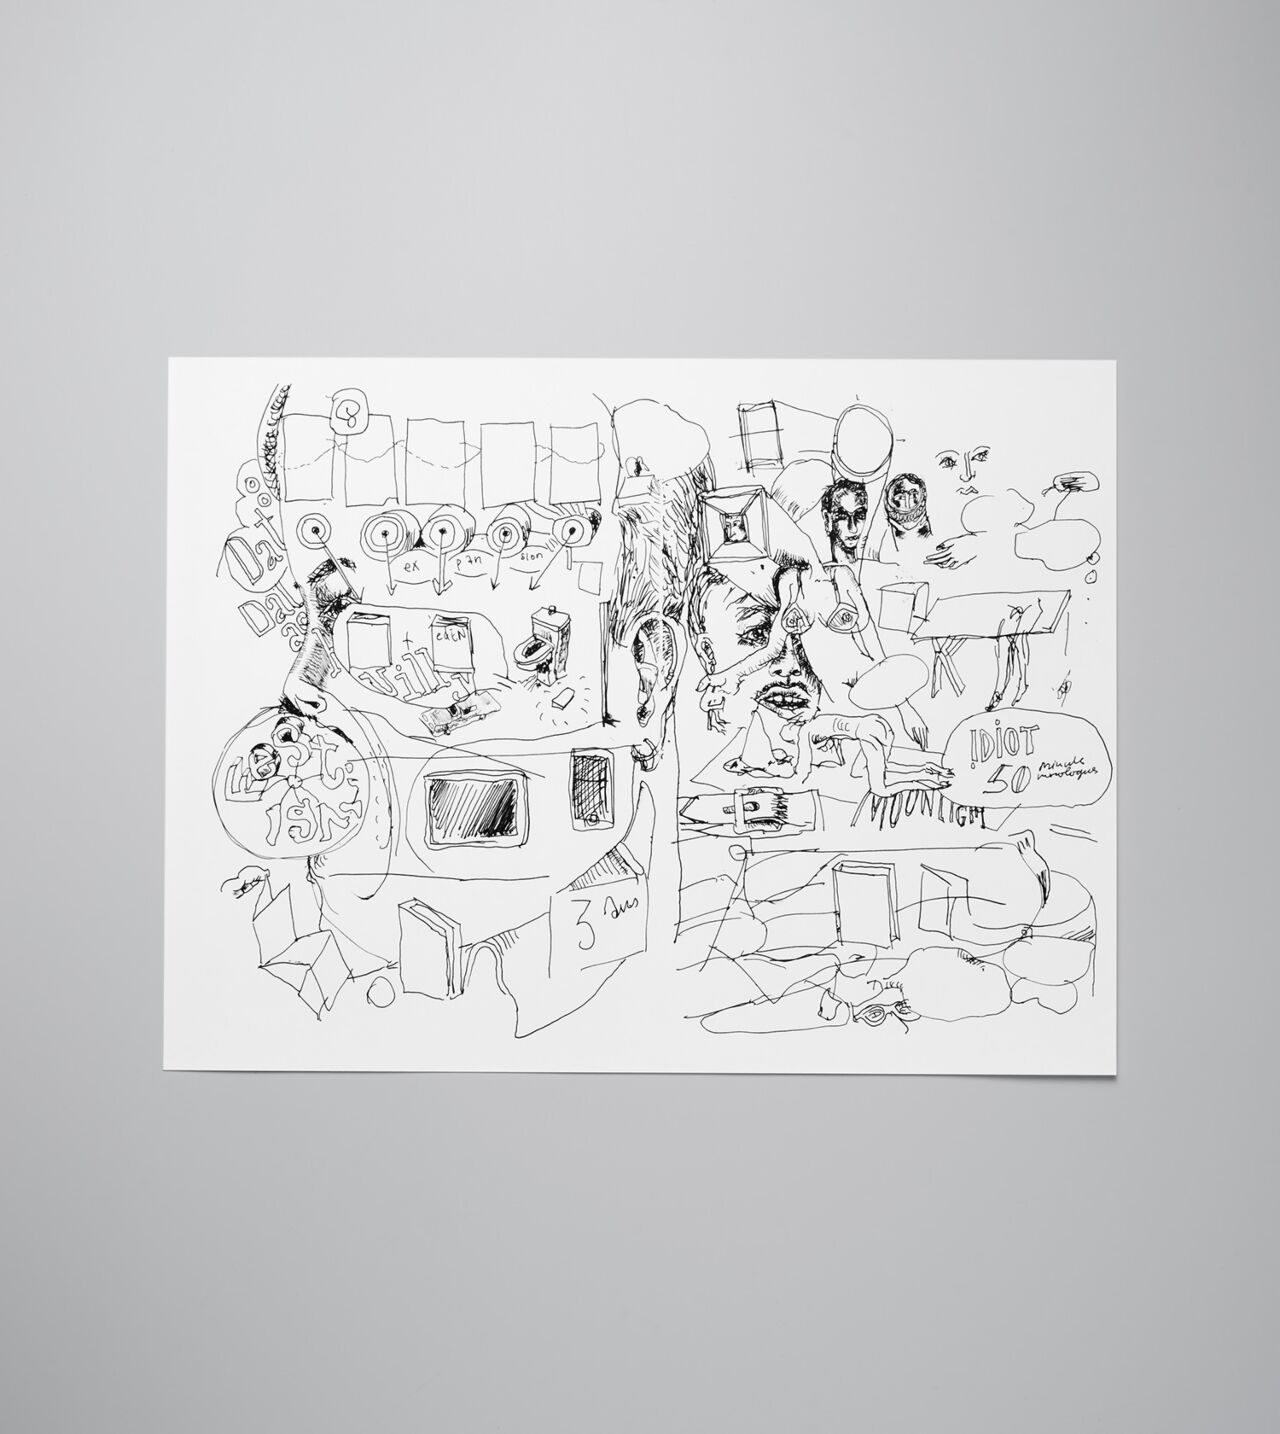 Picture of Byredo Drawer's Drawings